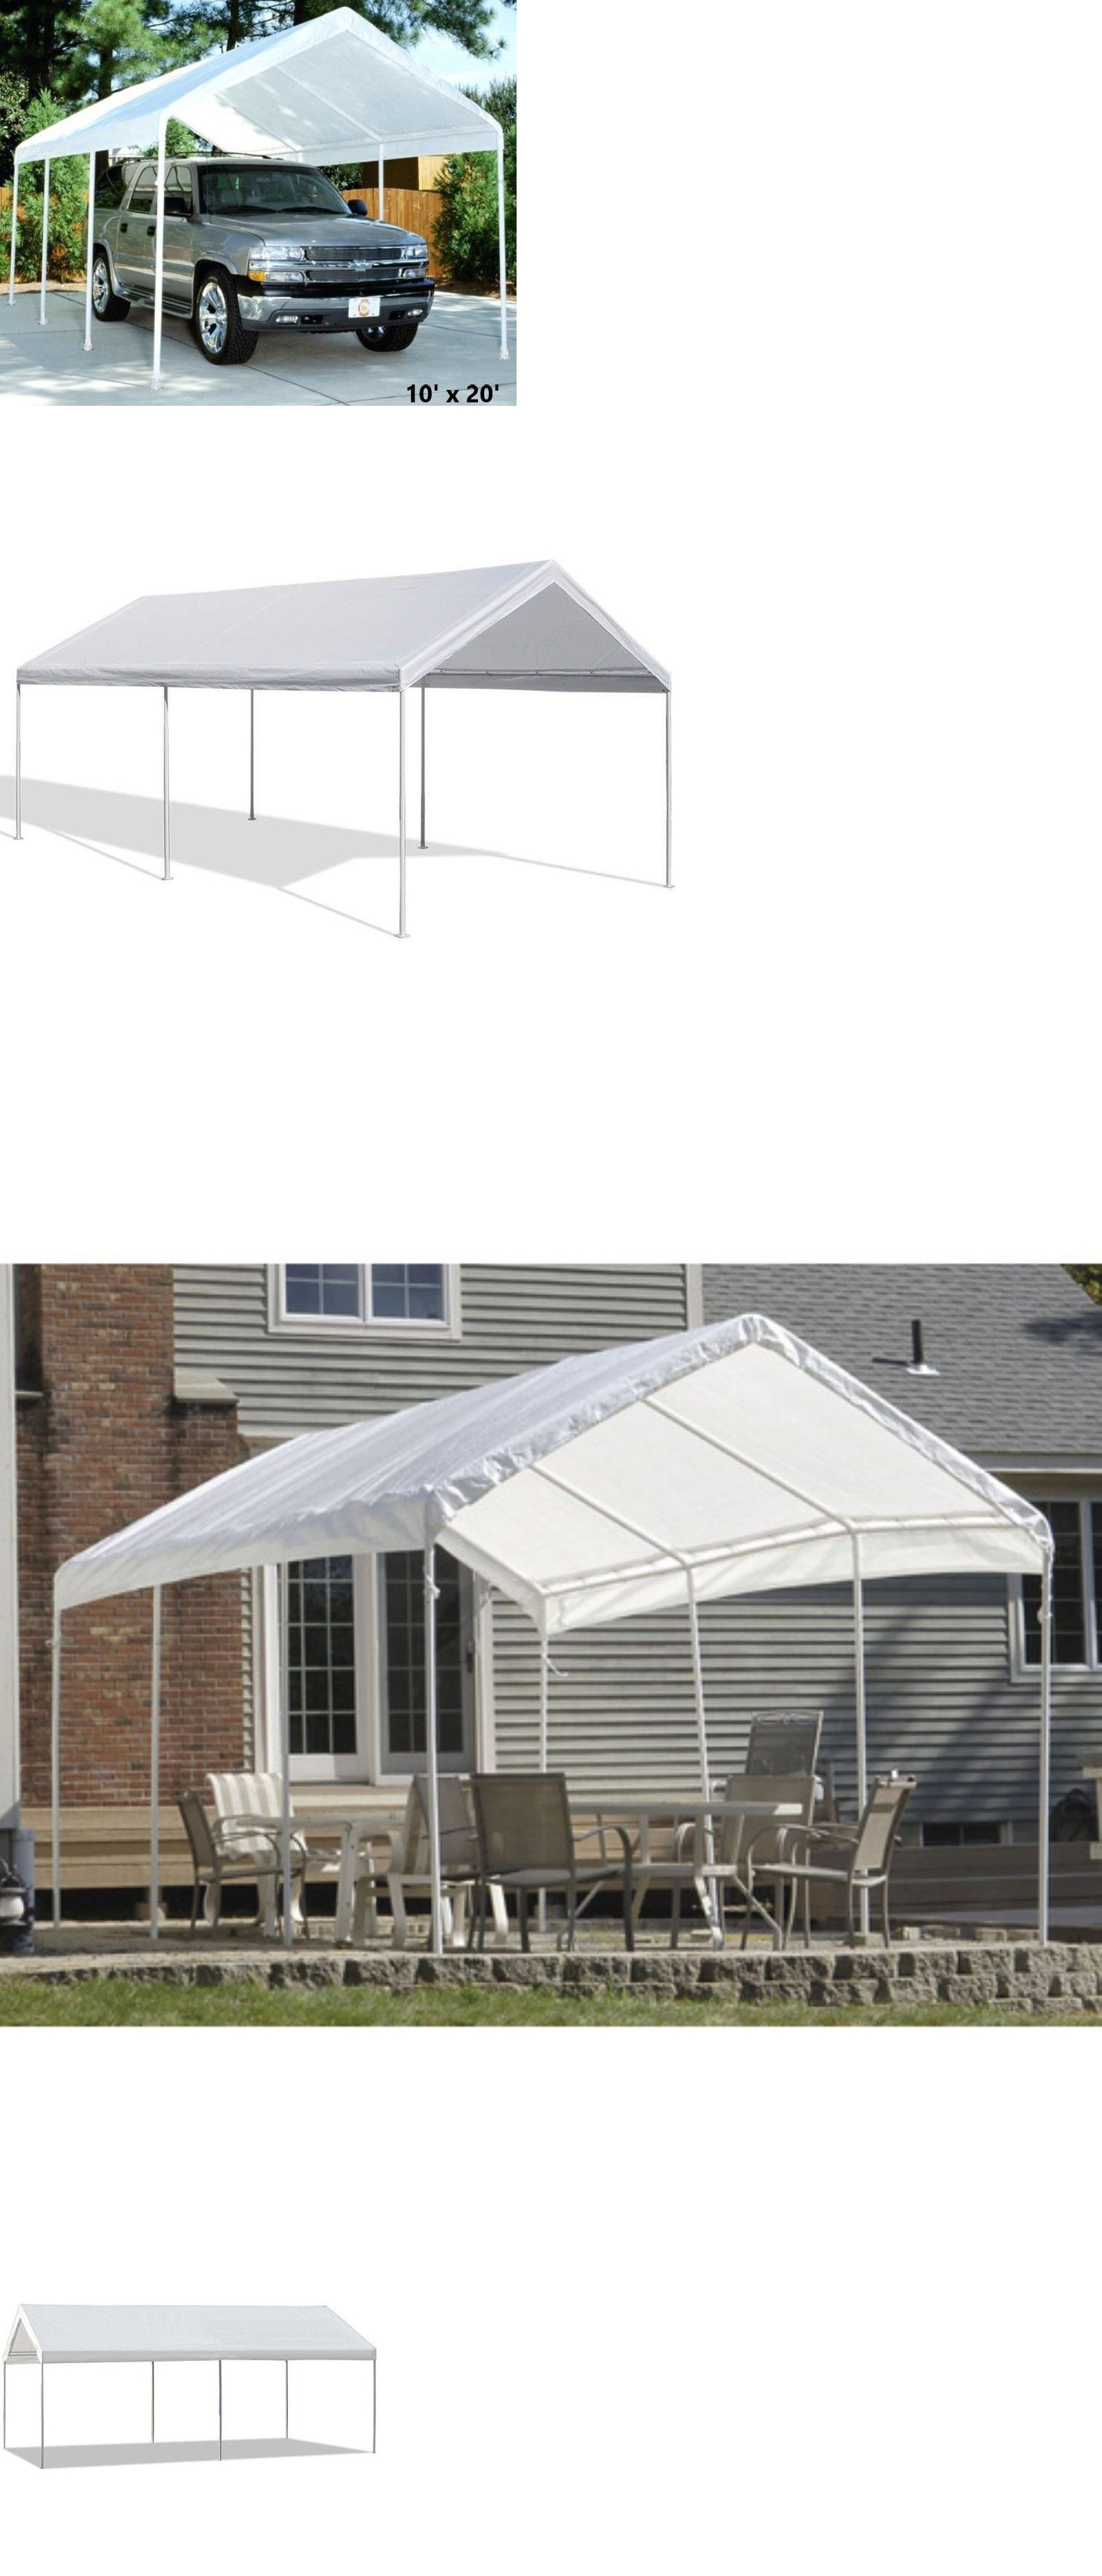 Details about White Heavy Duty Garage Canopy Tent 10x20 FT